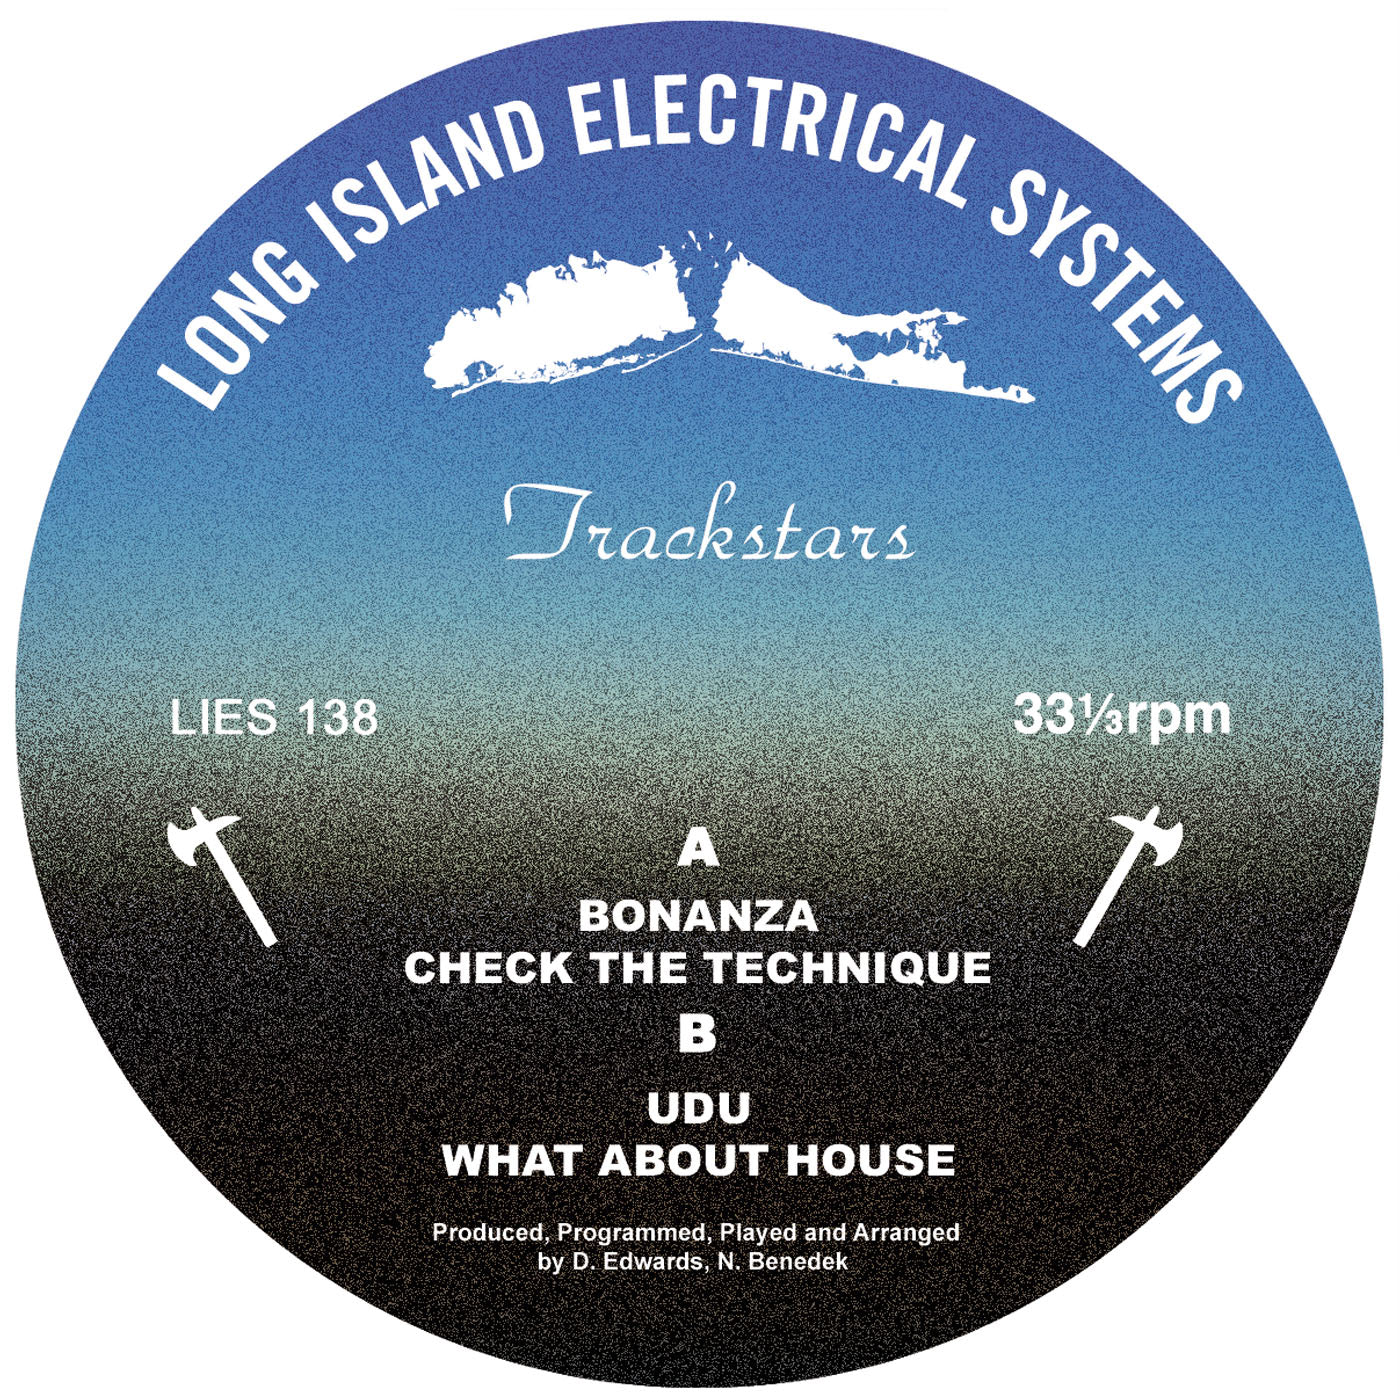 Trackstars (Delroy Edwards & Benedek) - Untitled 12""